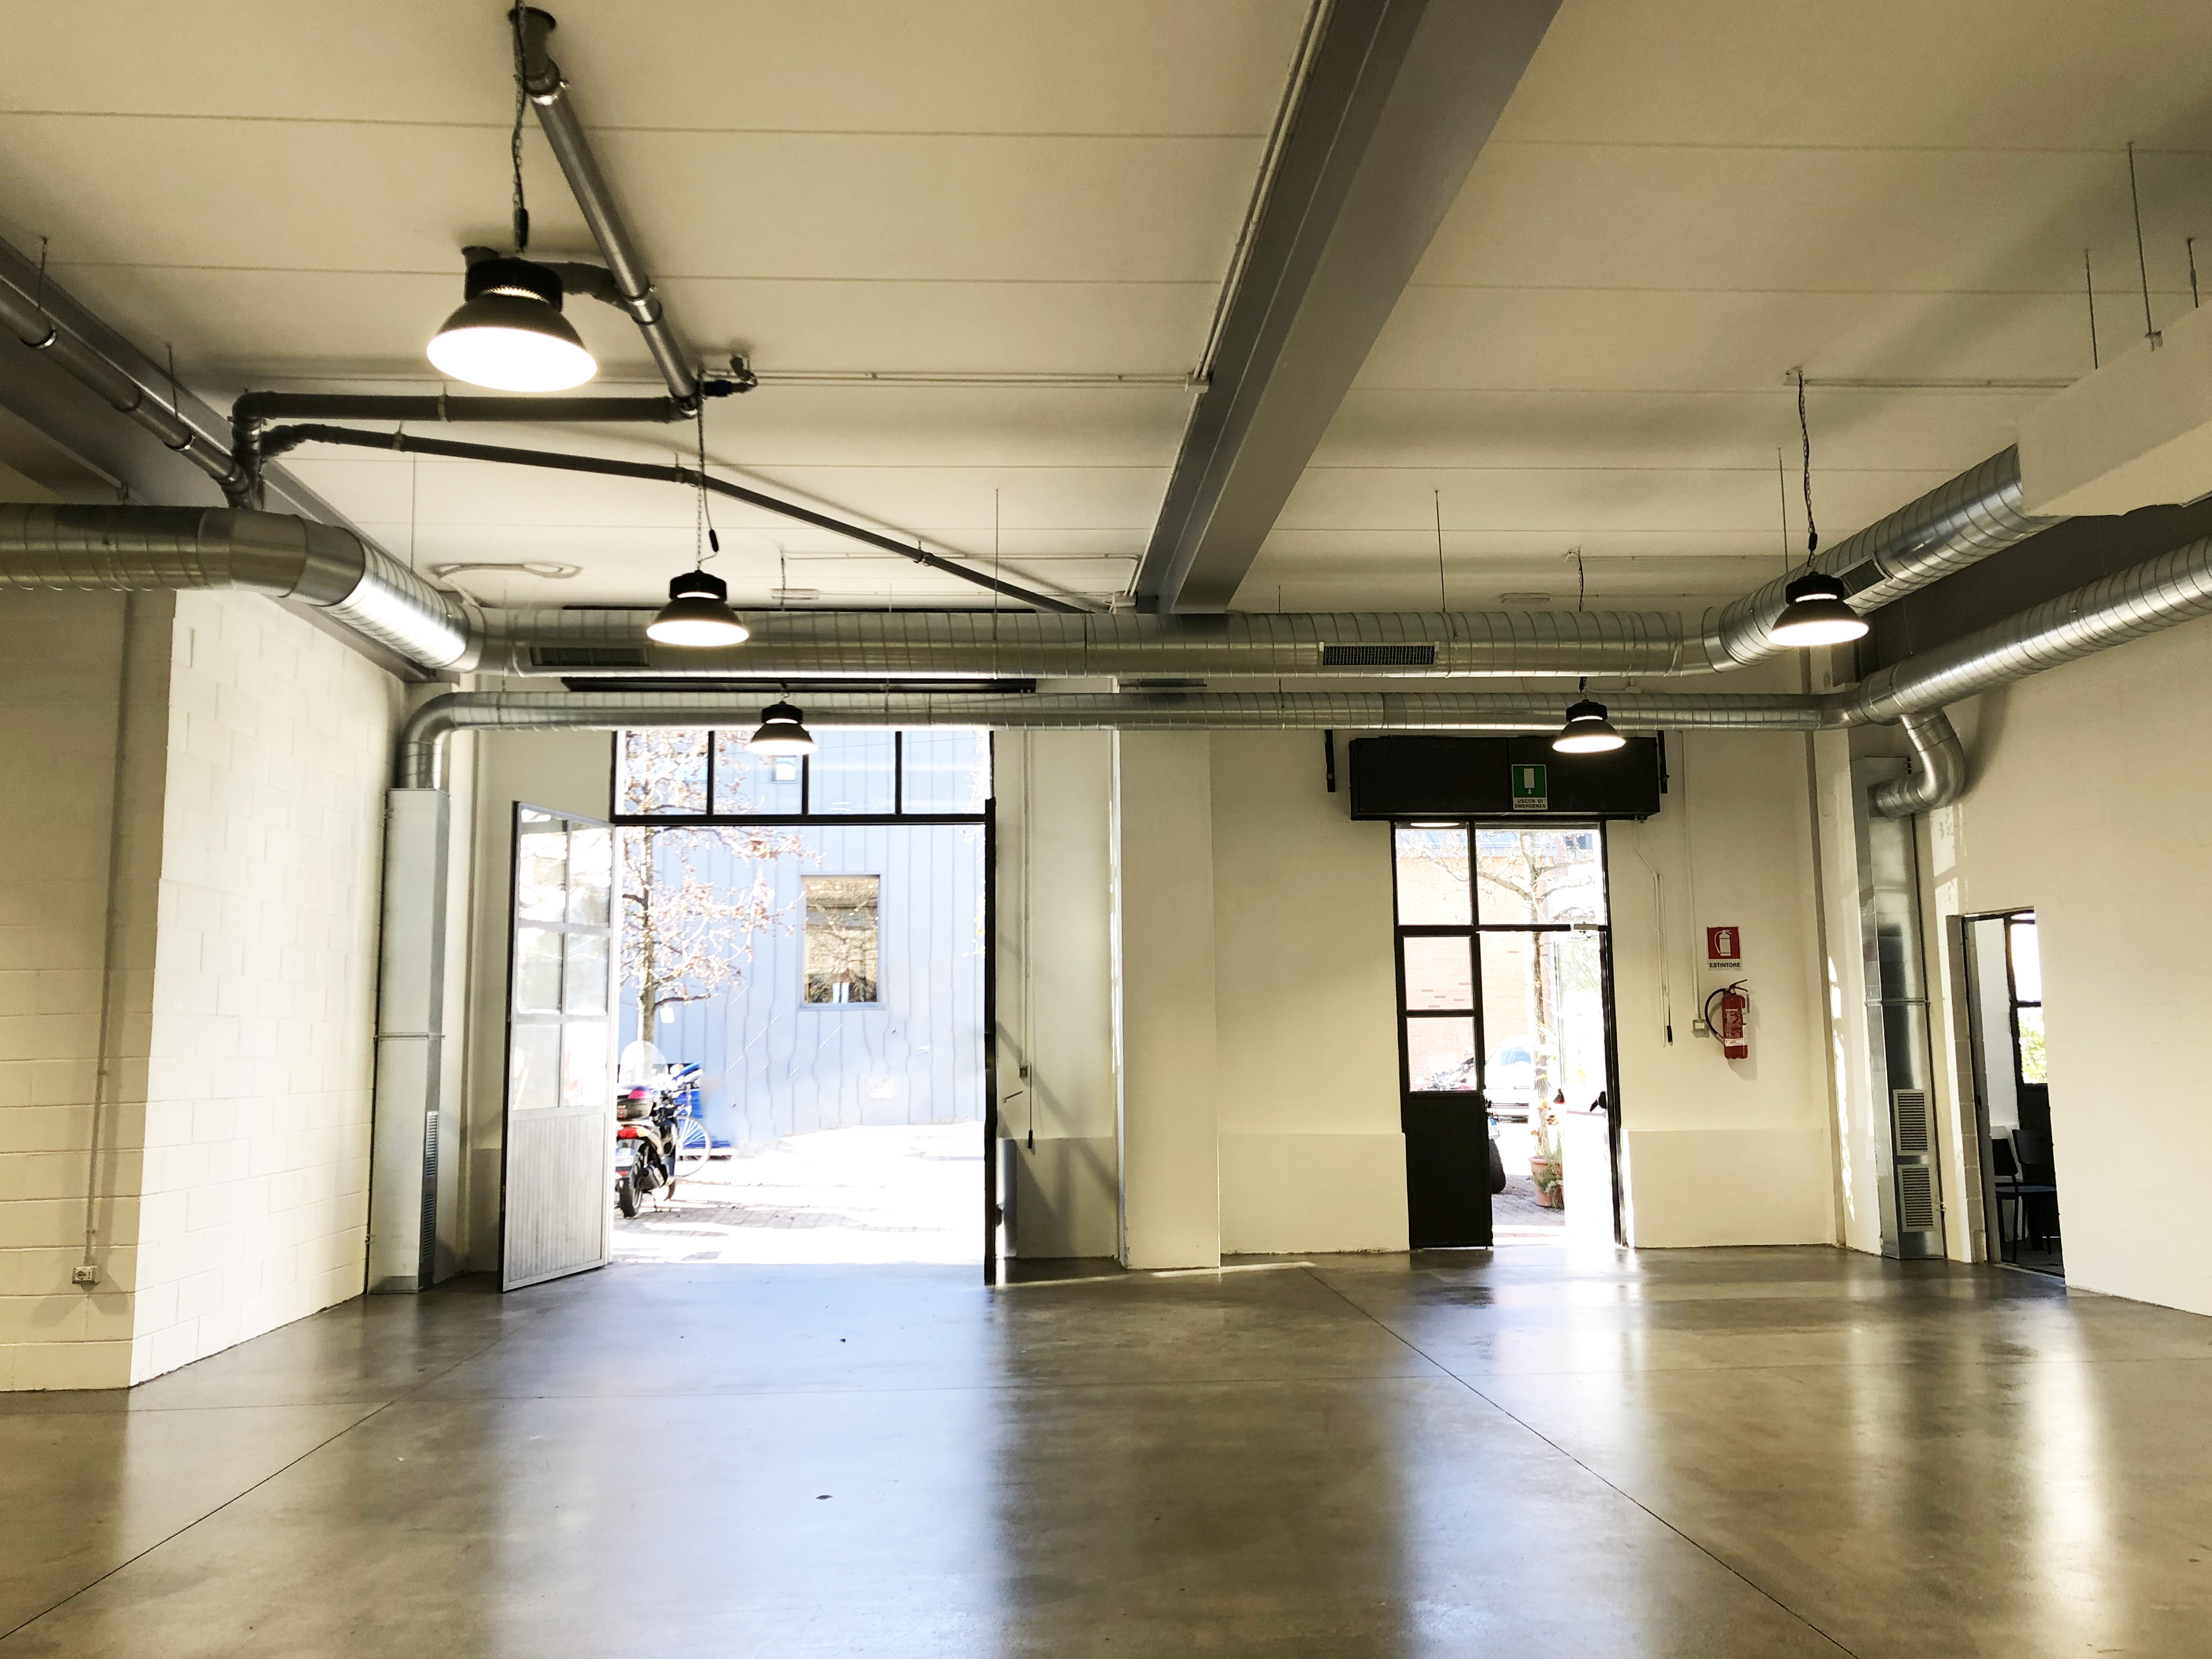 Officina3 - Open space, Spazio industriale di 200mq in Via Tortona 31  | location disallestita 4